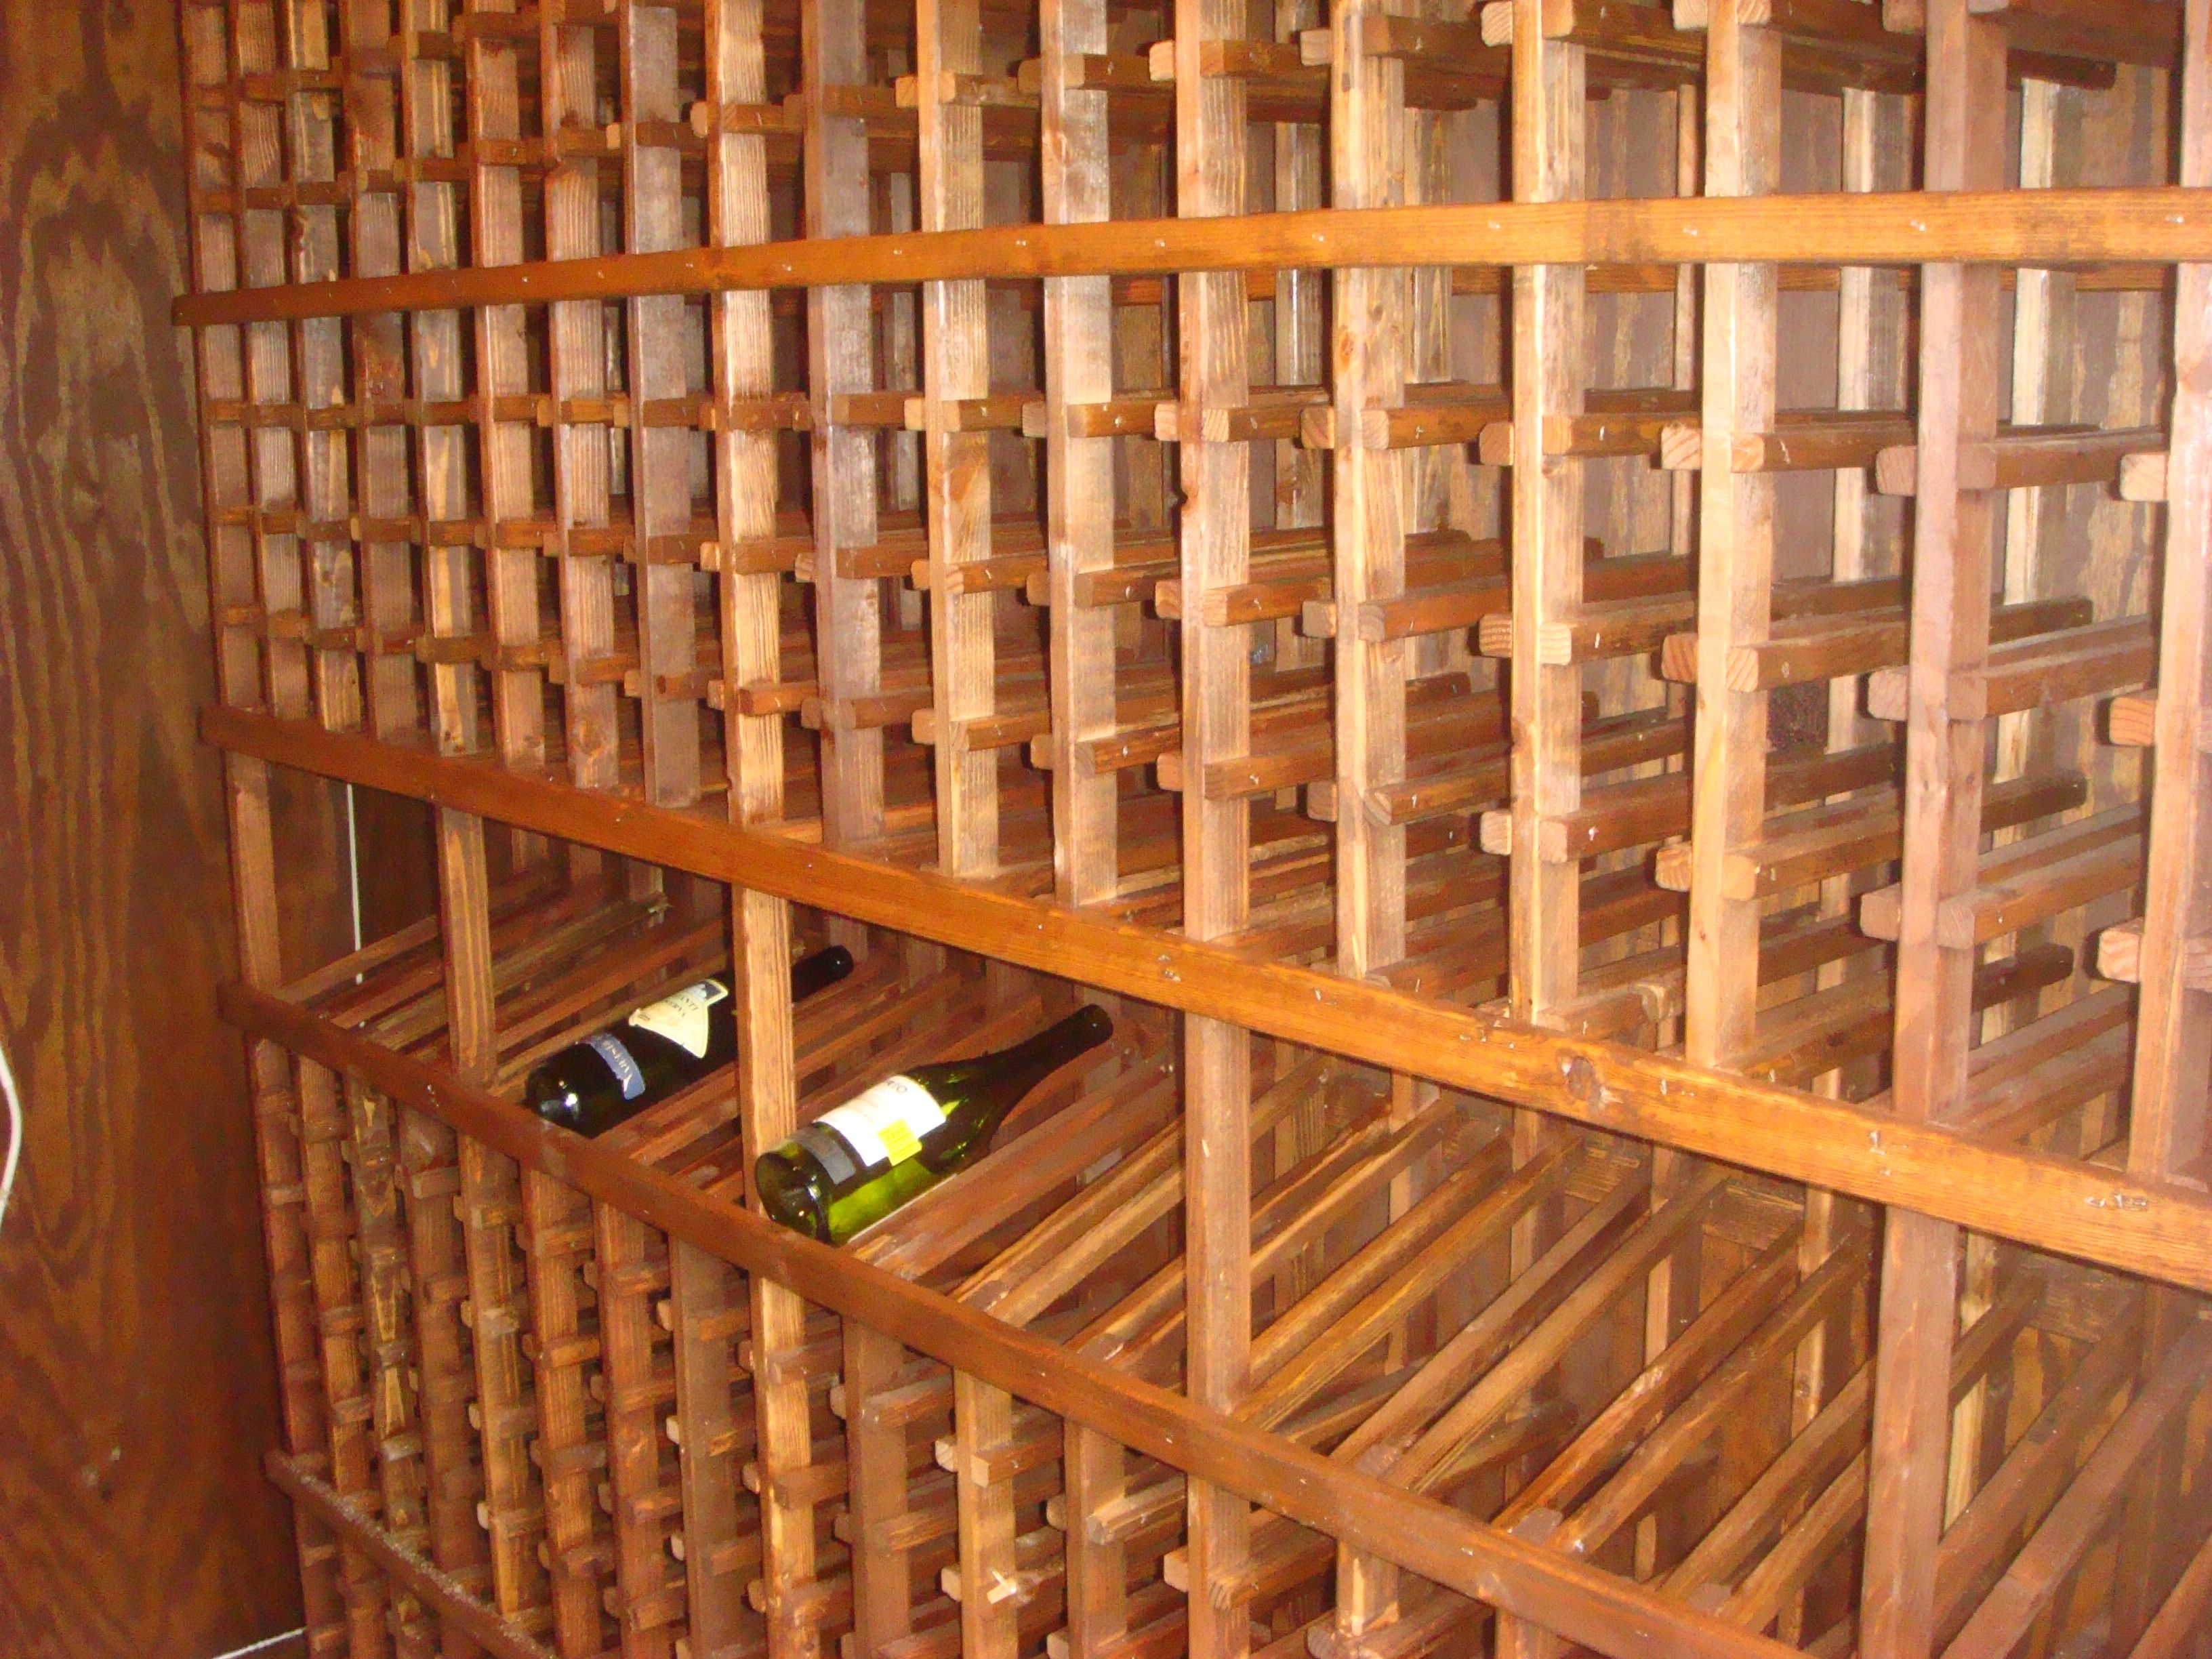 Plans For Building Your Own Wine Racks That You Can Buy We Are Going To Make This Magnificent Wine Rack From Some Diy Wine Cellar Wine Cellar Racks